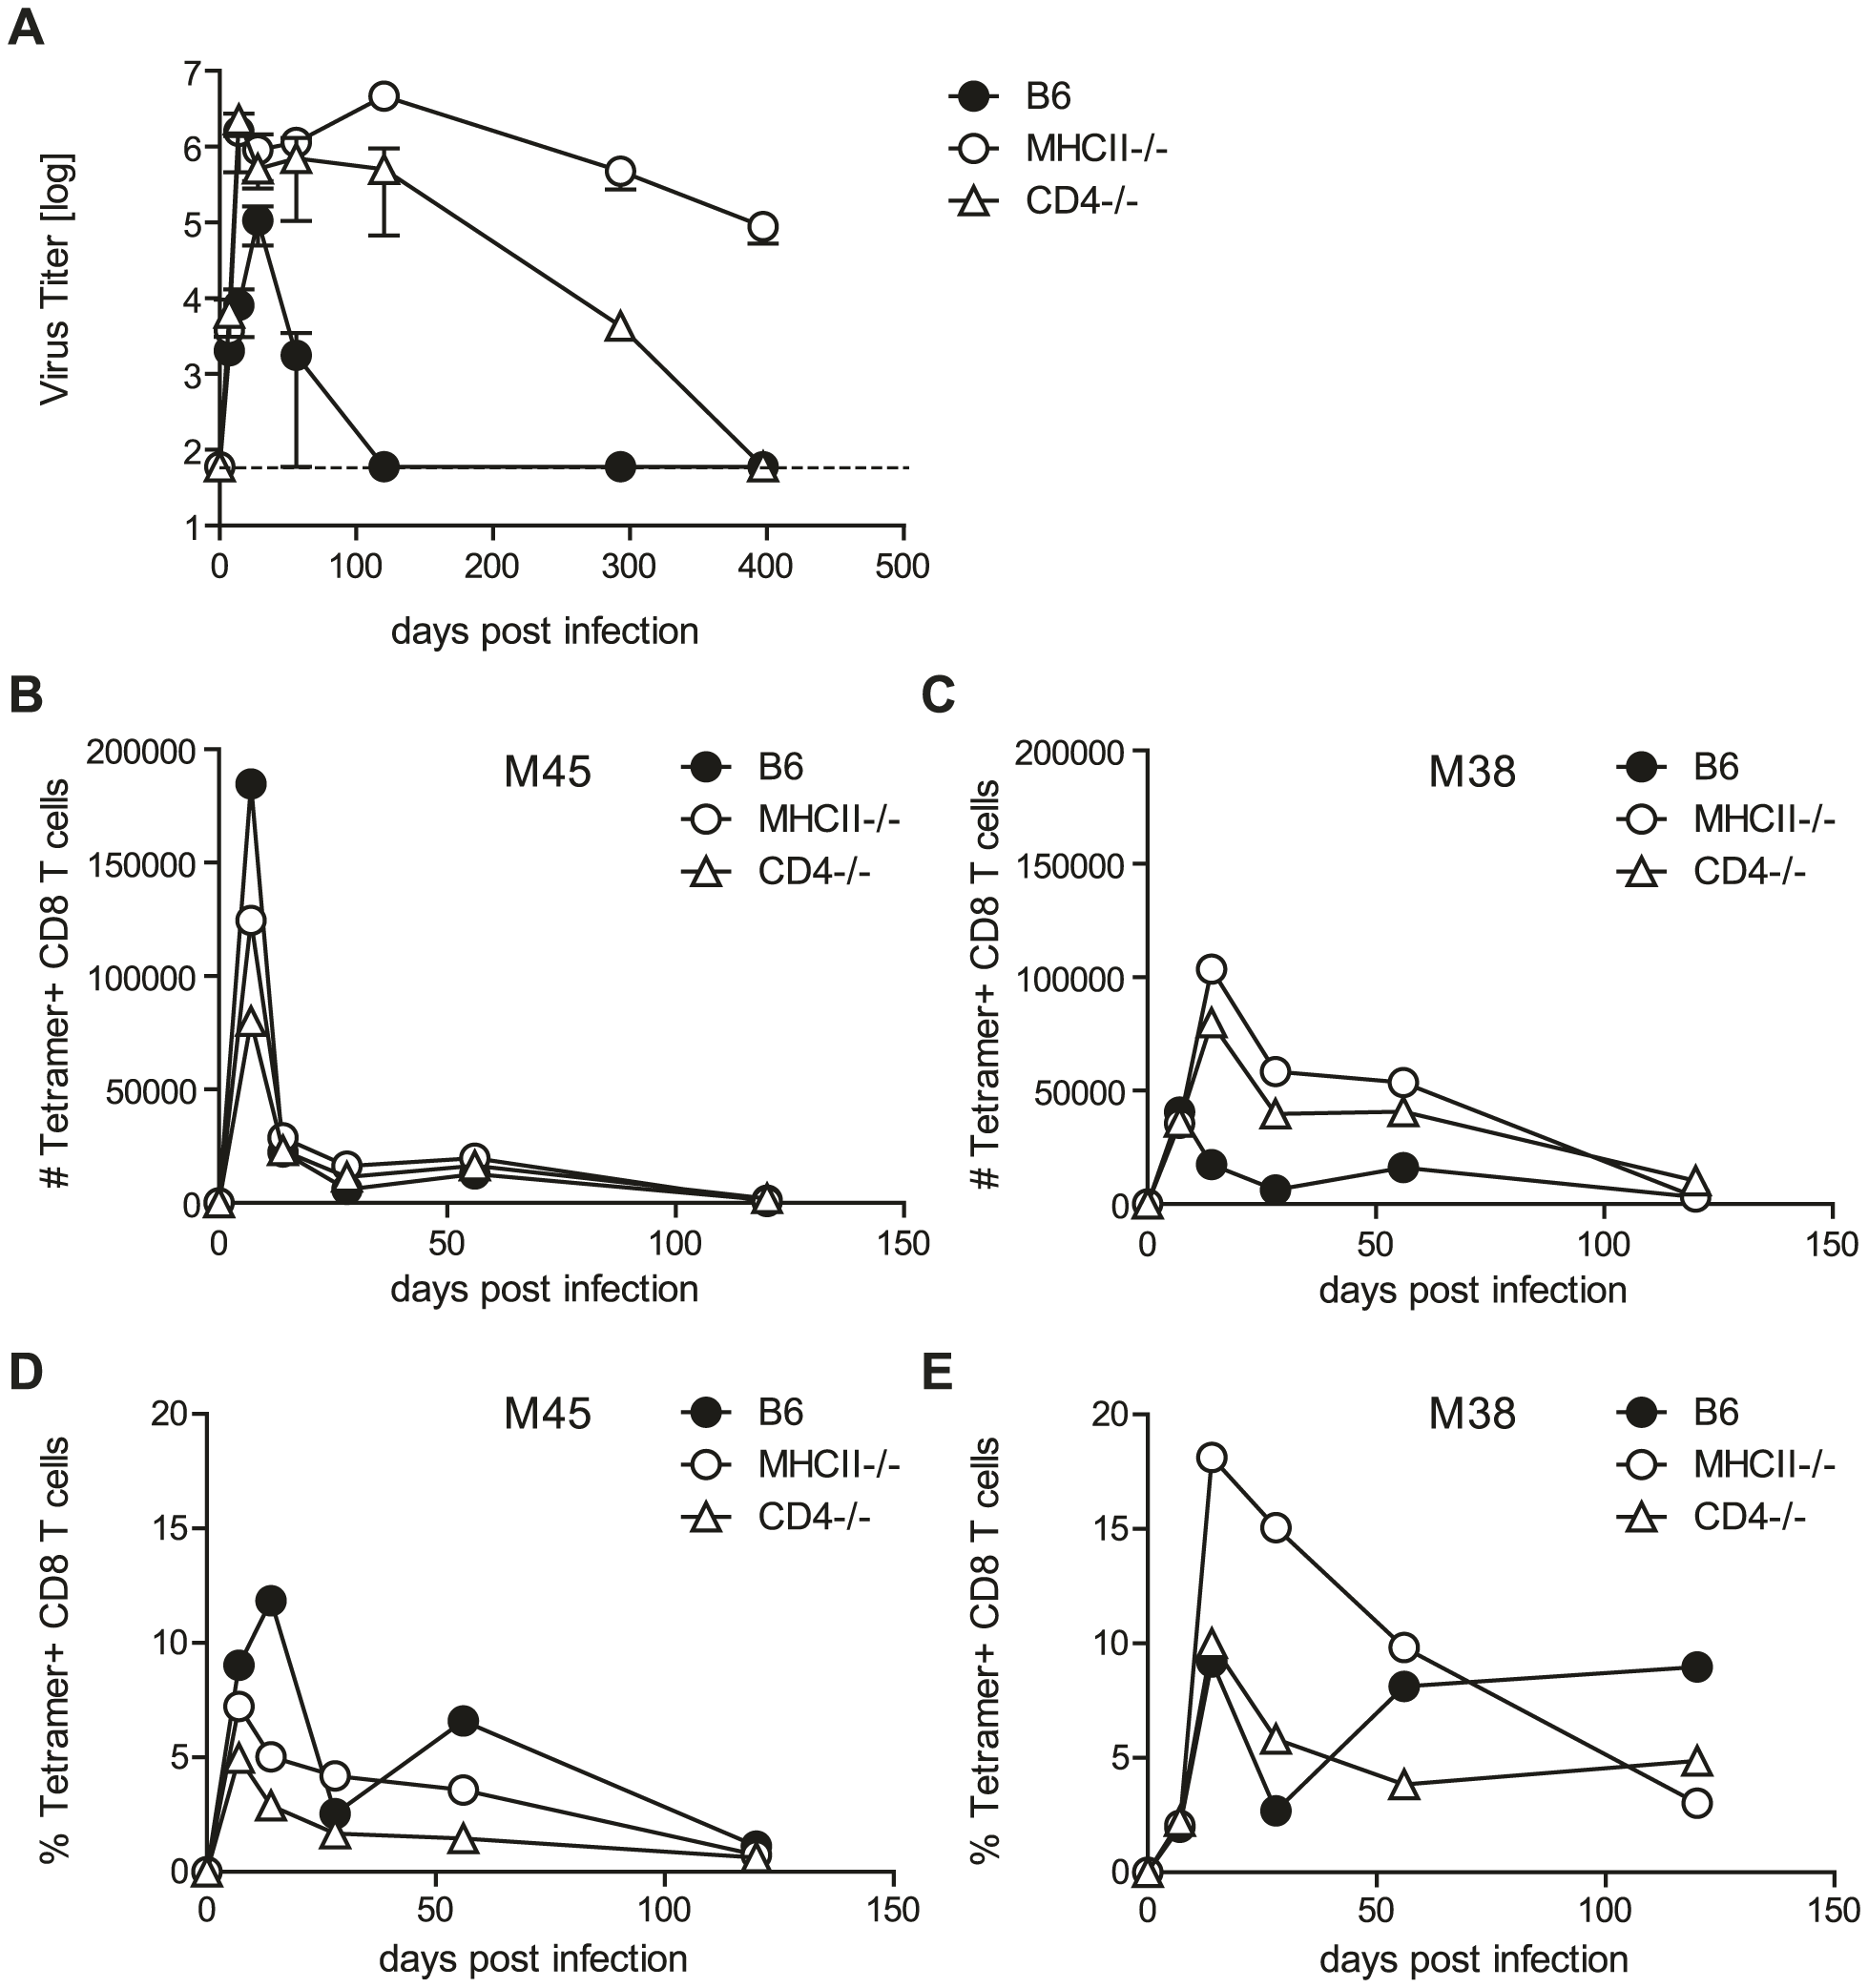 Helper functions exerted by CD4 T cells are dispensable for MCMV control.